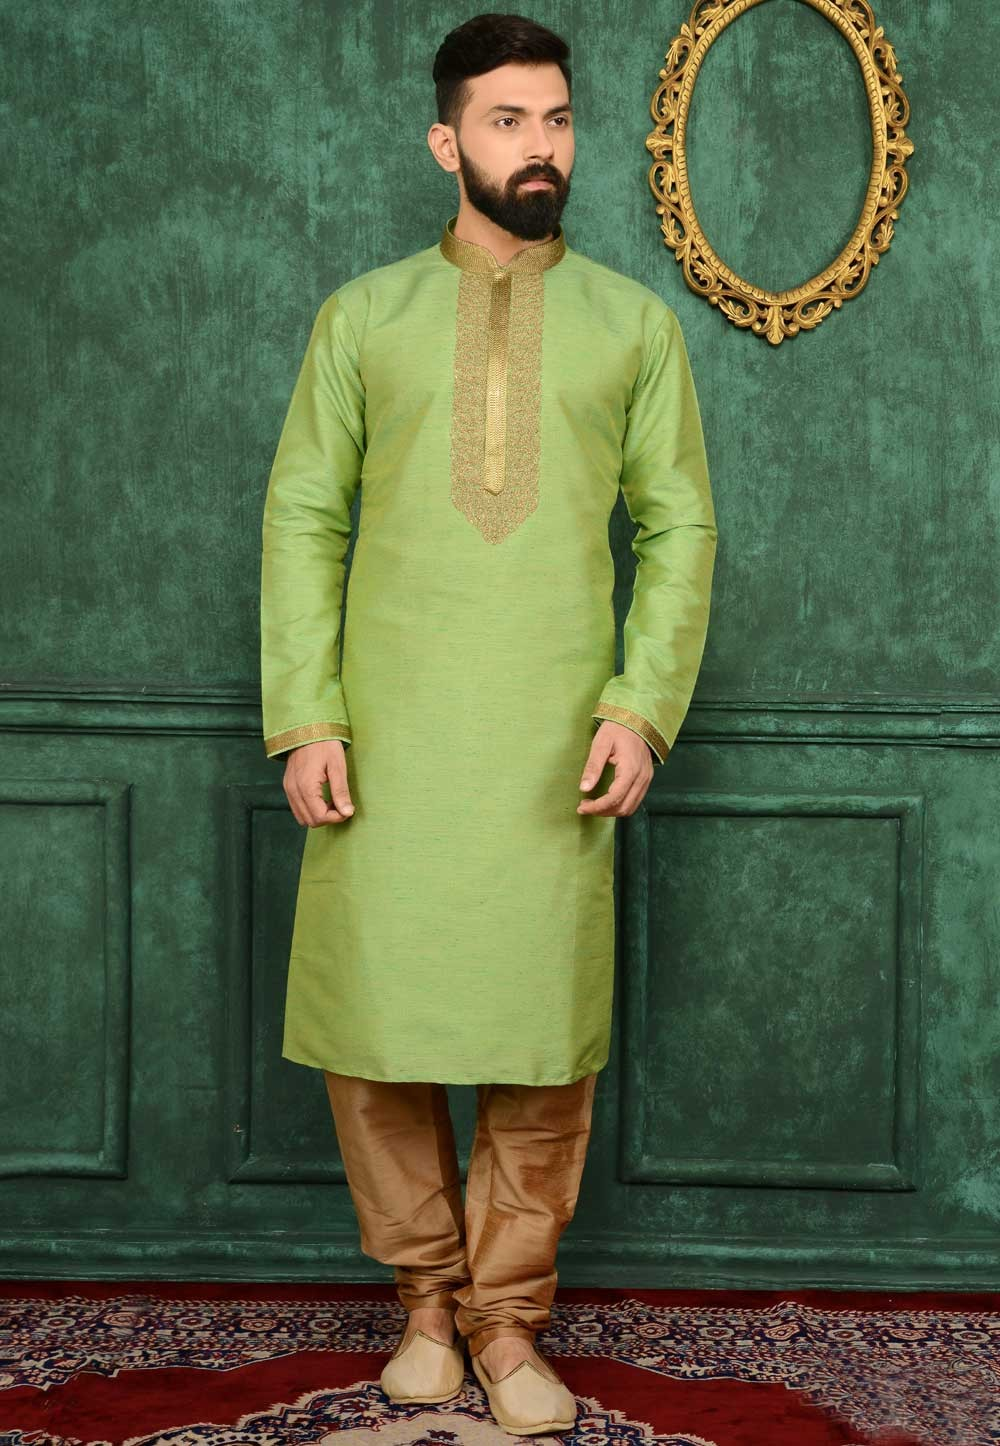 Sea Green Color Men's Readymade Kurta Pajama